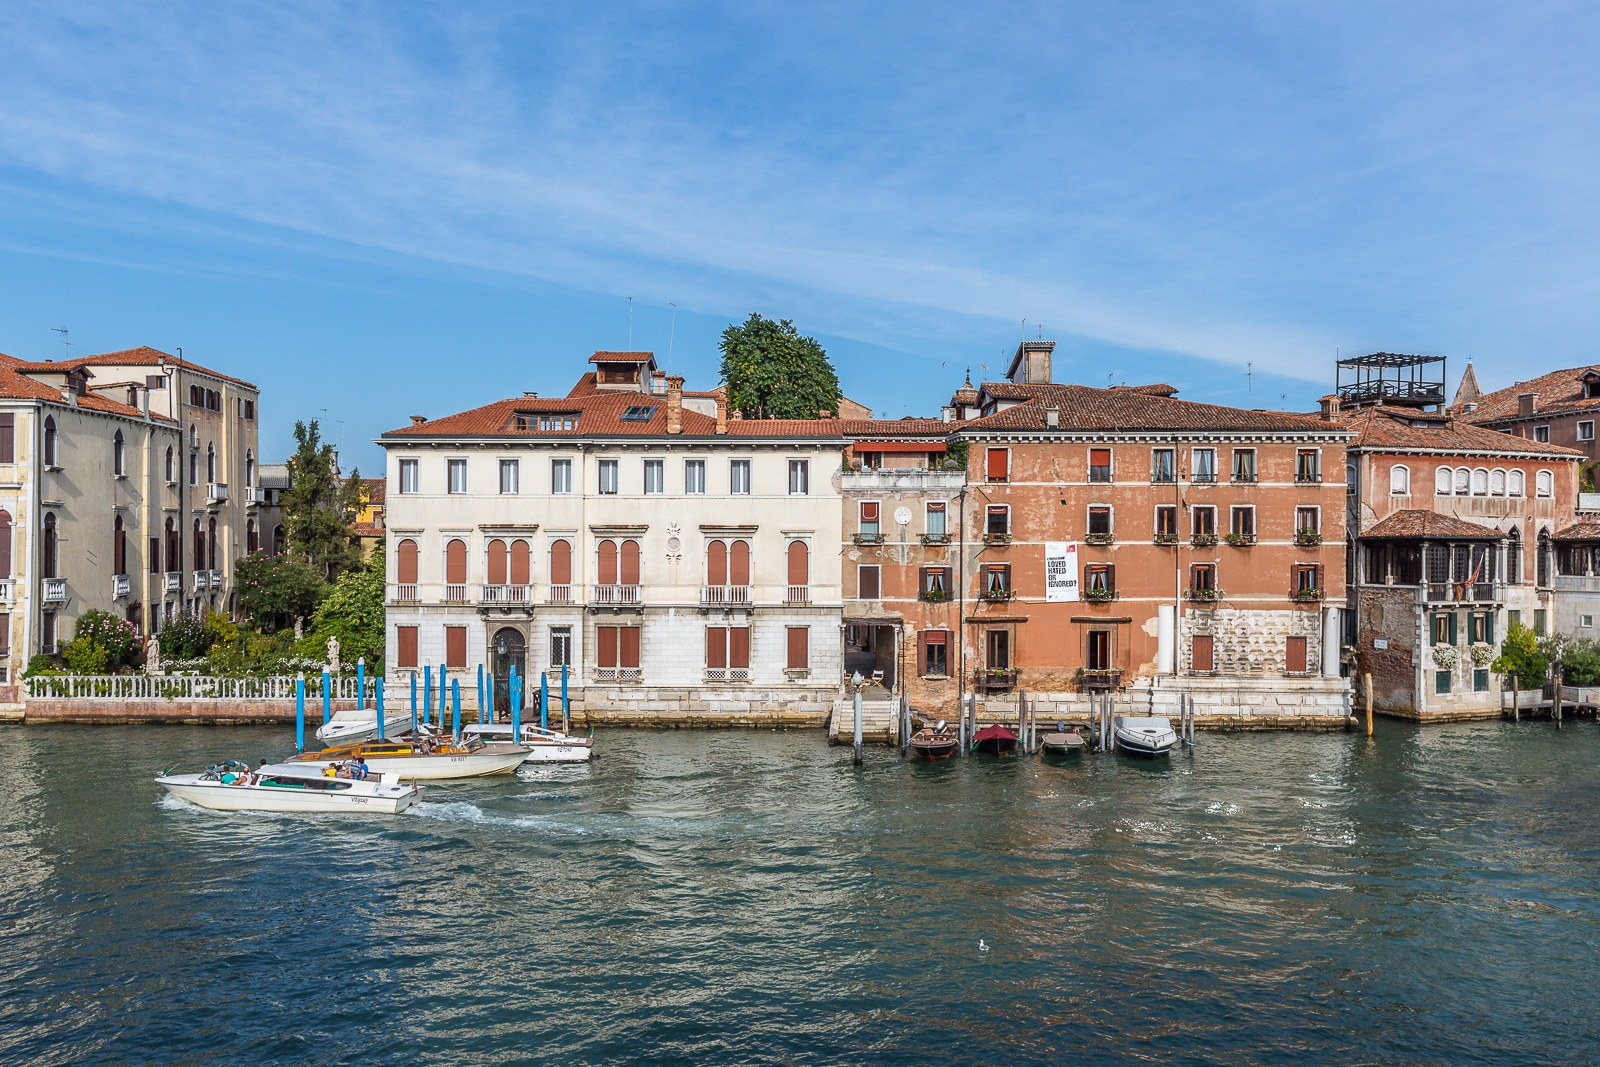 Property Image 2 - Apt on the Second Floor of an Exquisite Waterside Palace